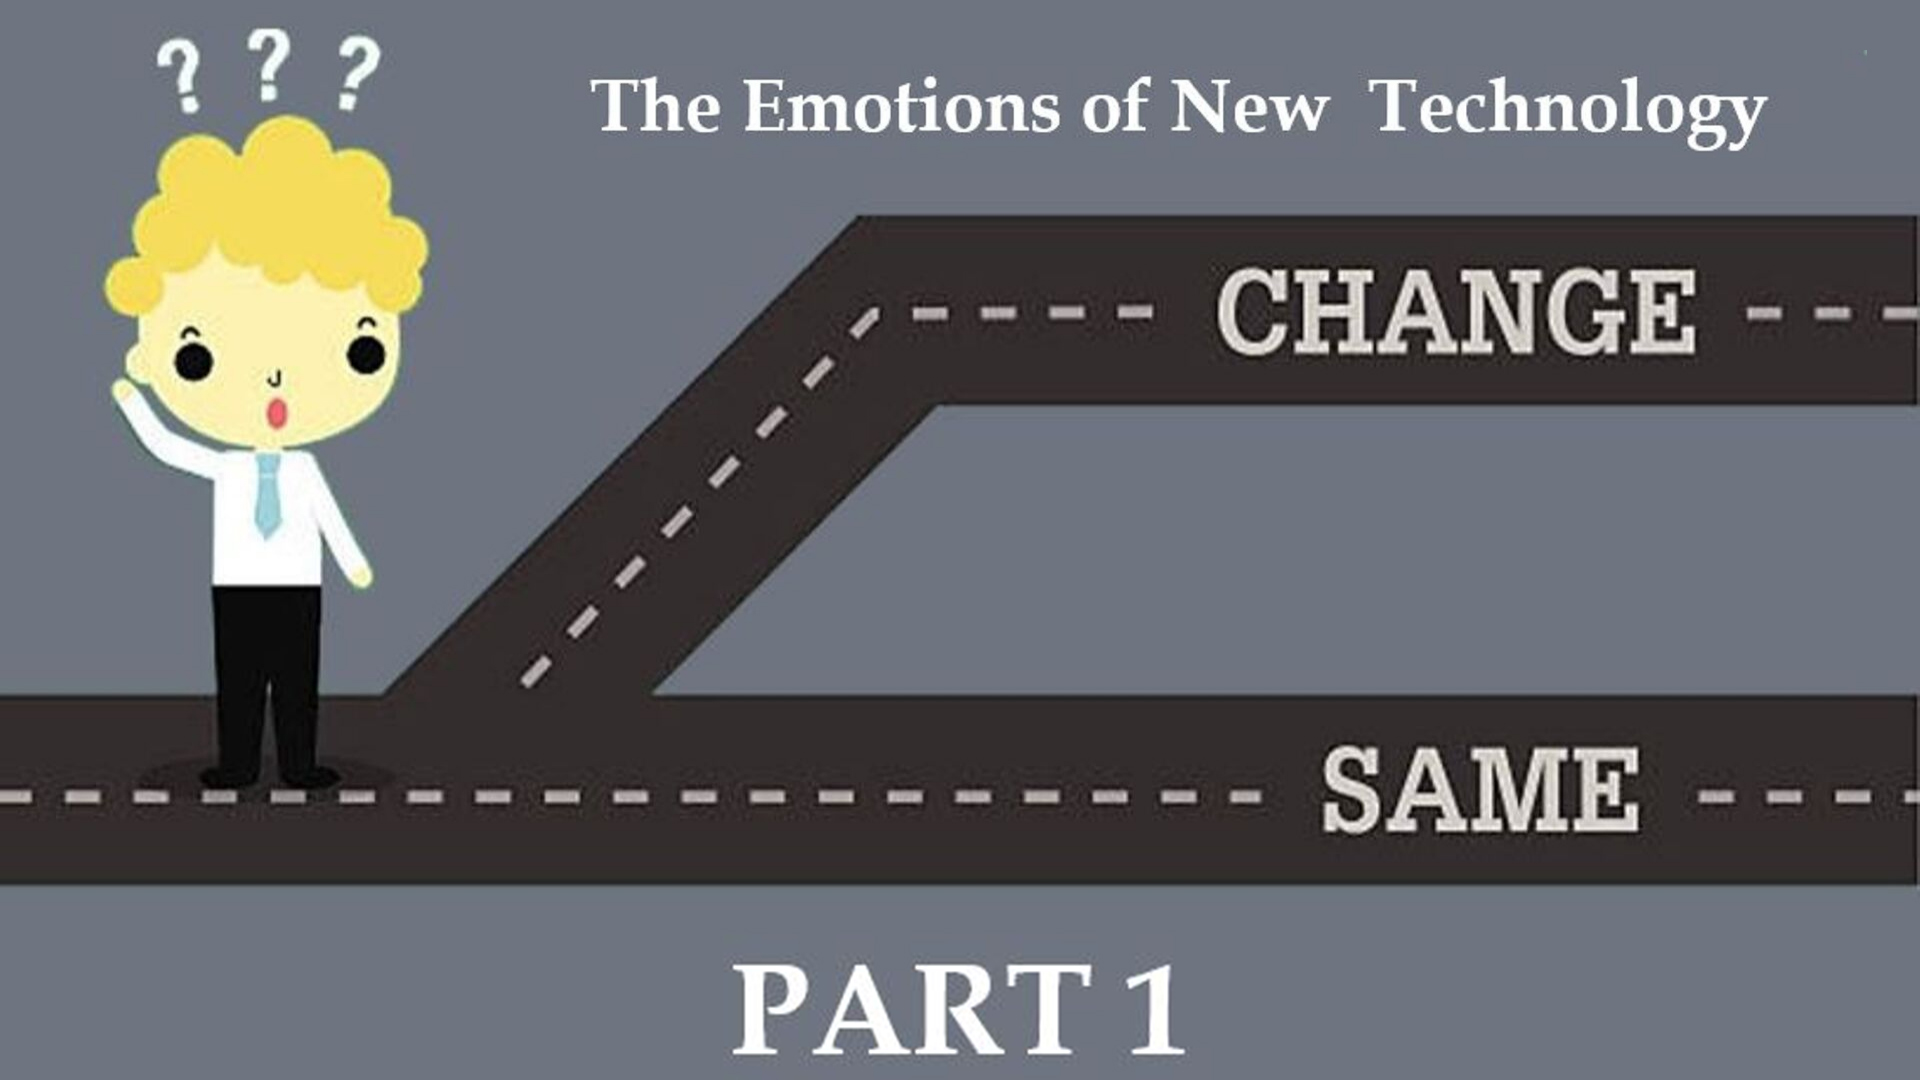 The Fear of Change, Part 1:  The Emotions of an M&A Transaction